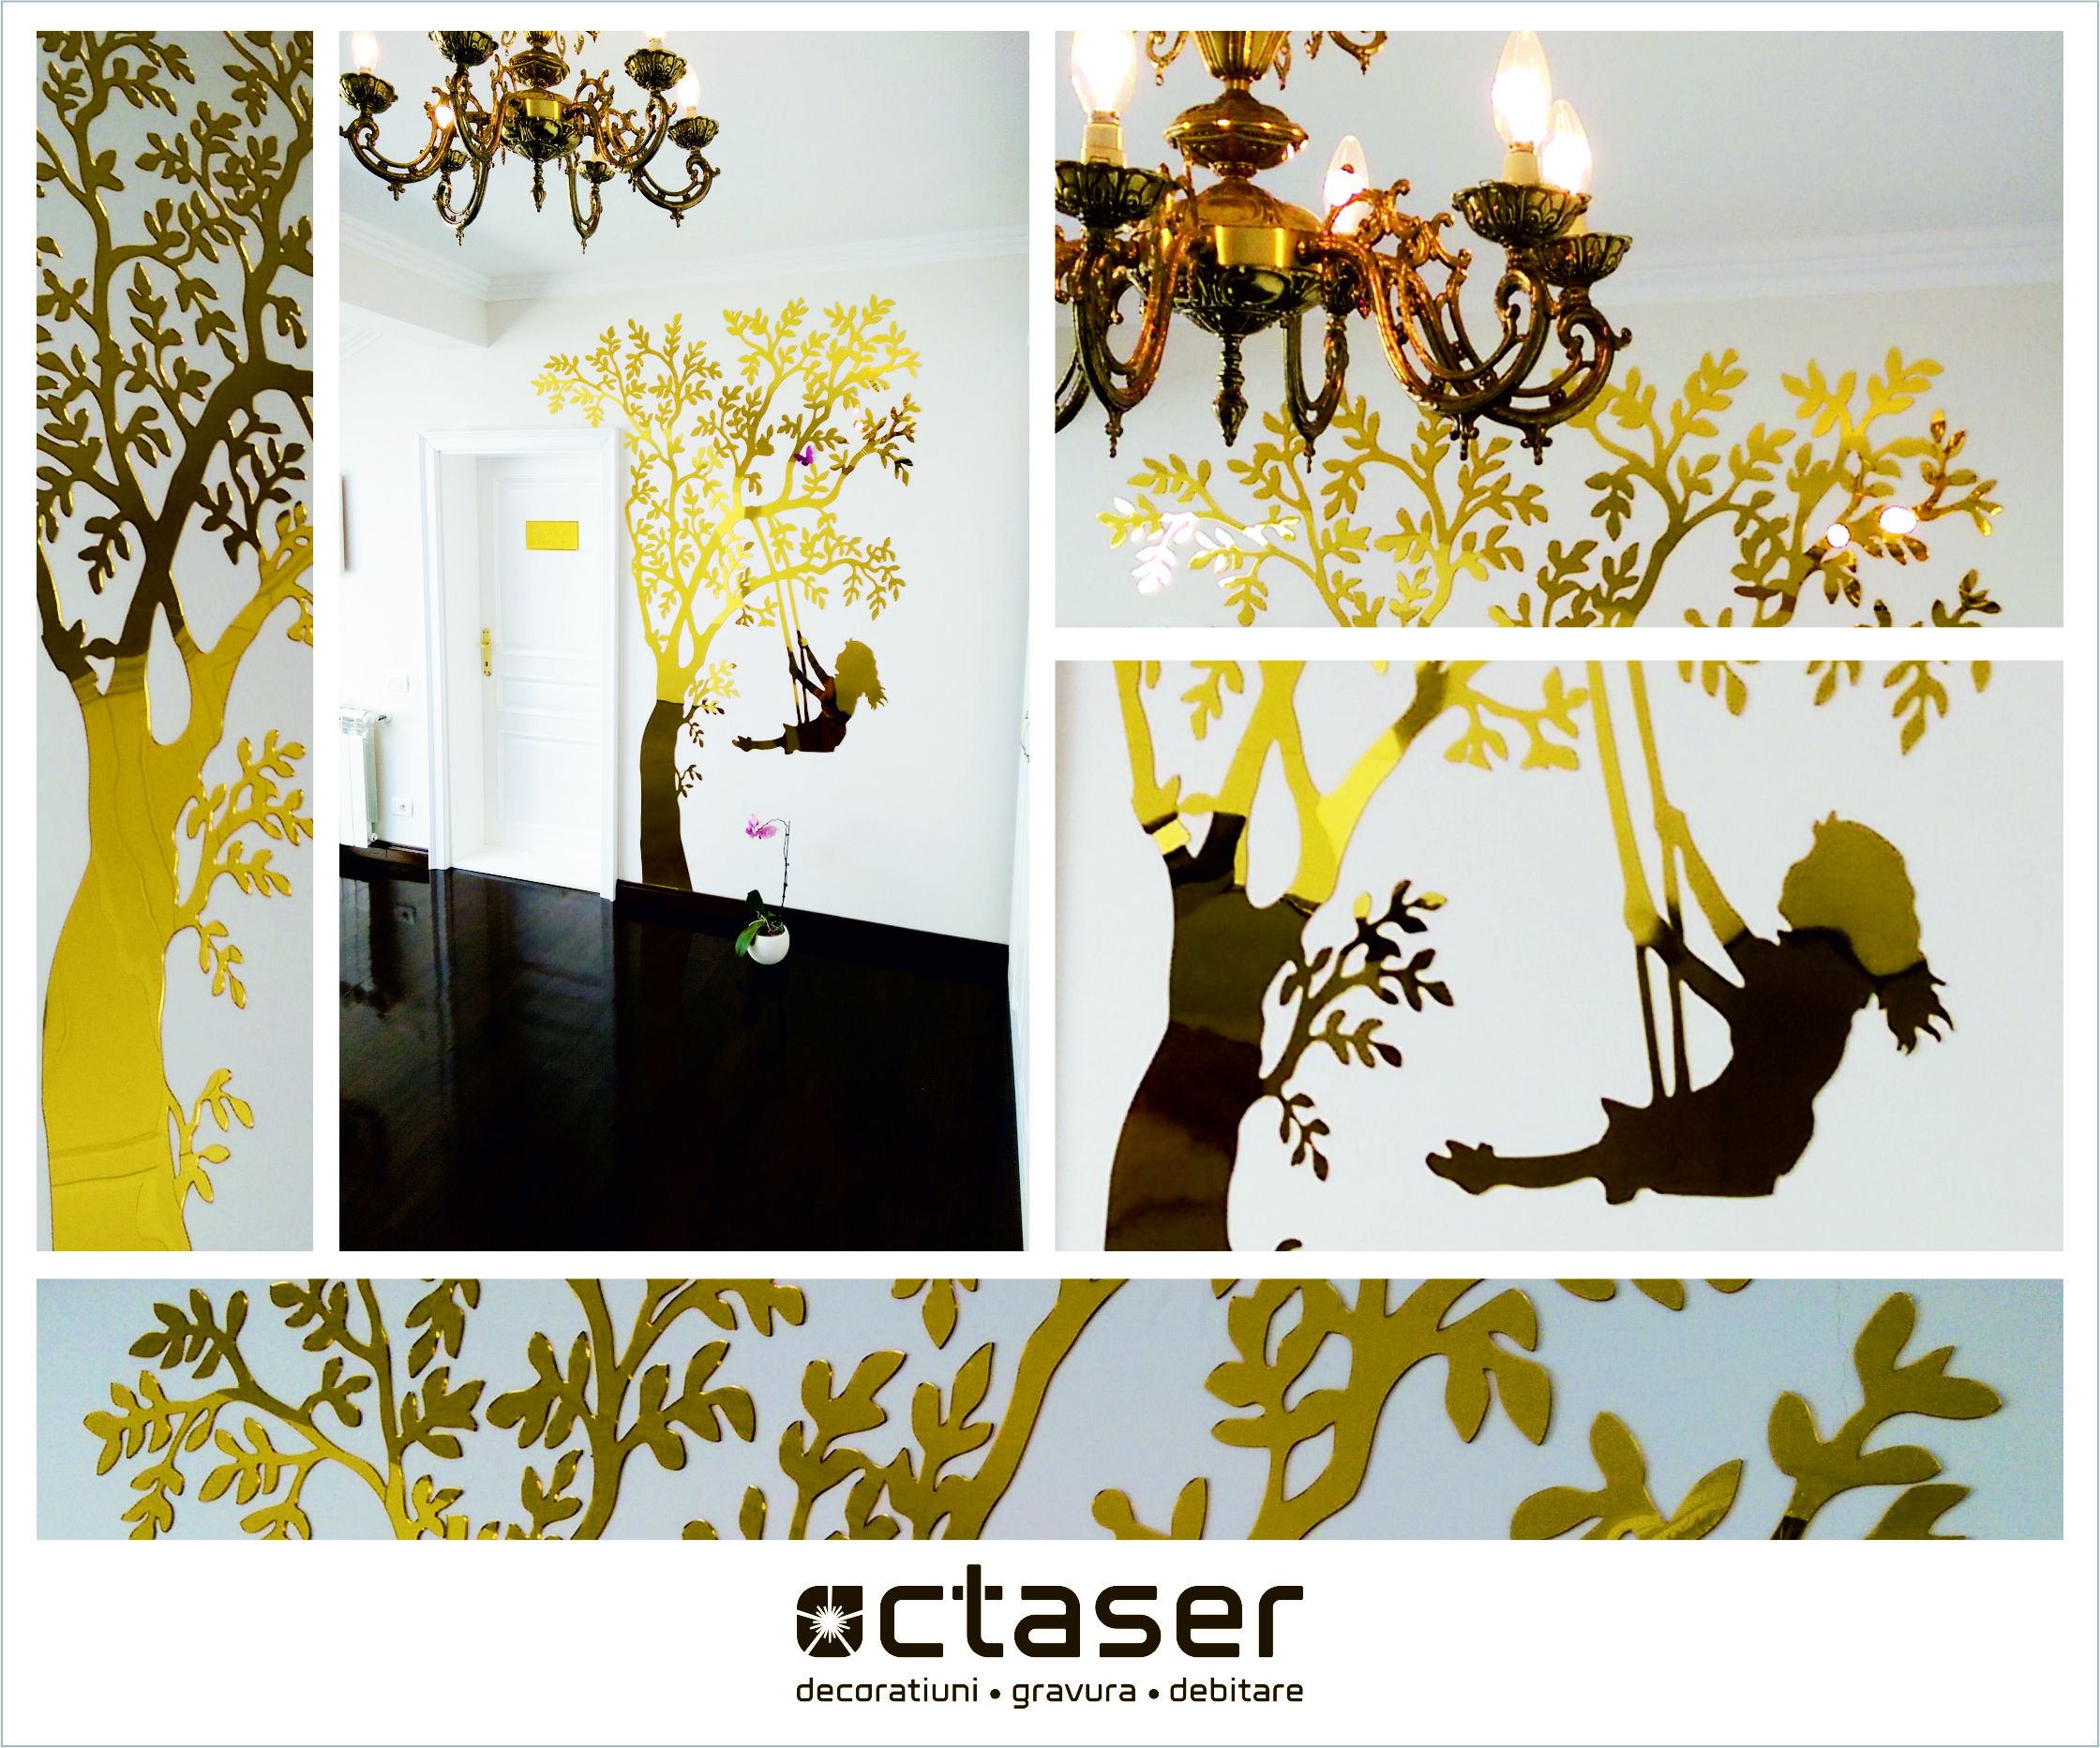 decor camera copil debitare laser firma octaser oradea